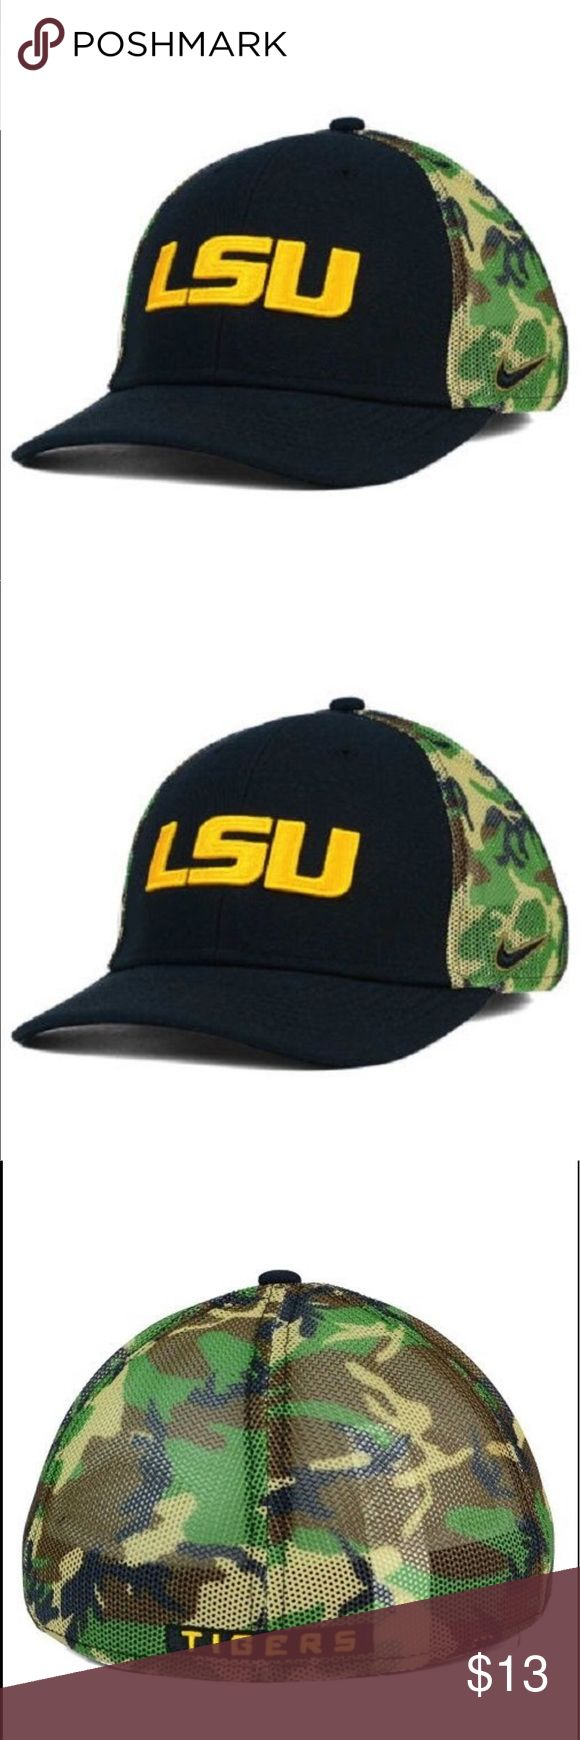 "LSU Tigers NCAA Nike Swoosh Flex Fitted Hat LSU Tigers NCAA Nike ""Camo Hook"" Swoosh Flex Fitted Hat   Product Details  LSU Tigers NCAA Nike ""Camo Hook"" Swoosh Flex Fitted Hat Nike Camo Hook Cap Swoosh Flex Stretch Fitted Size One Size Fits Most Nike Other"